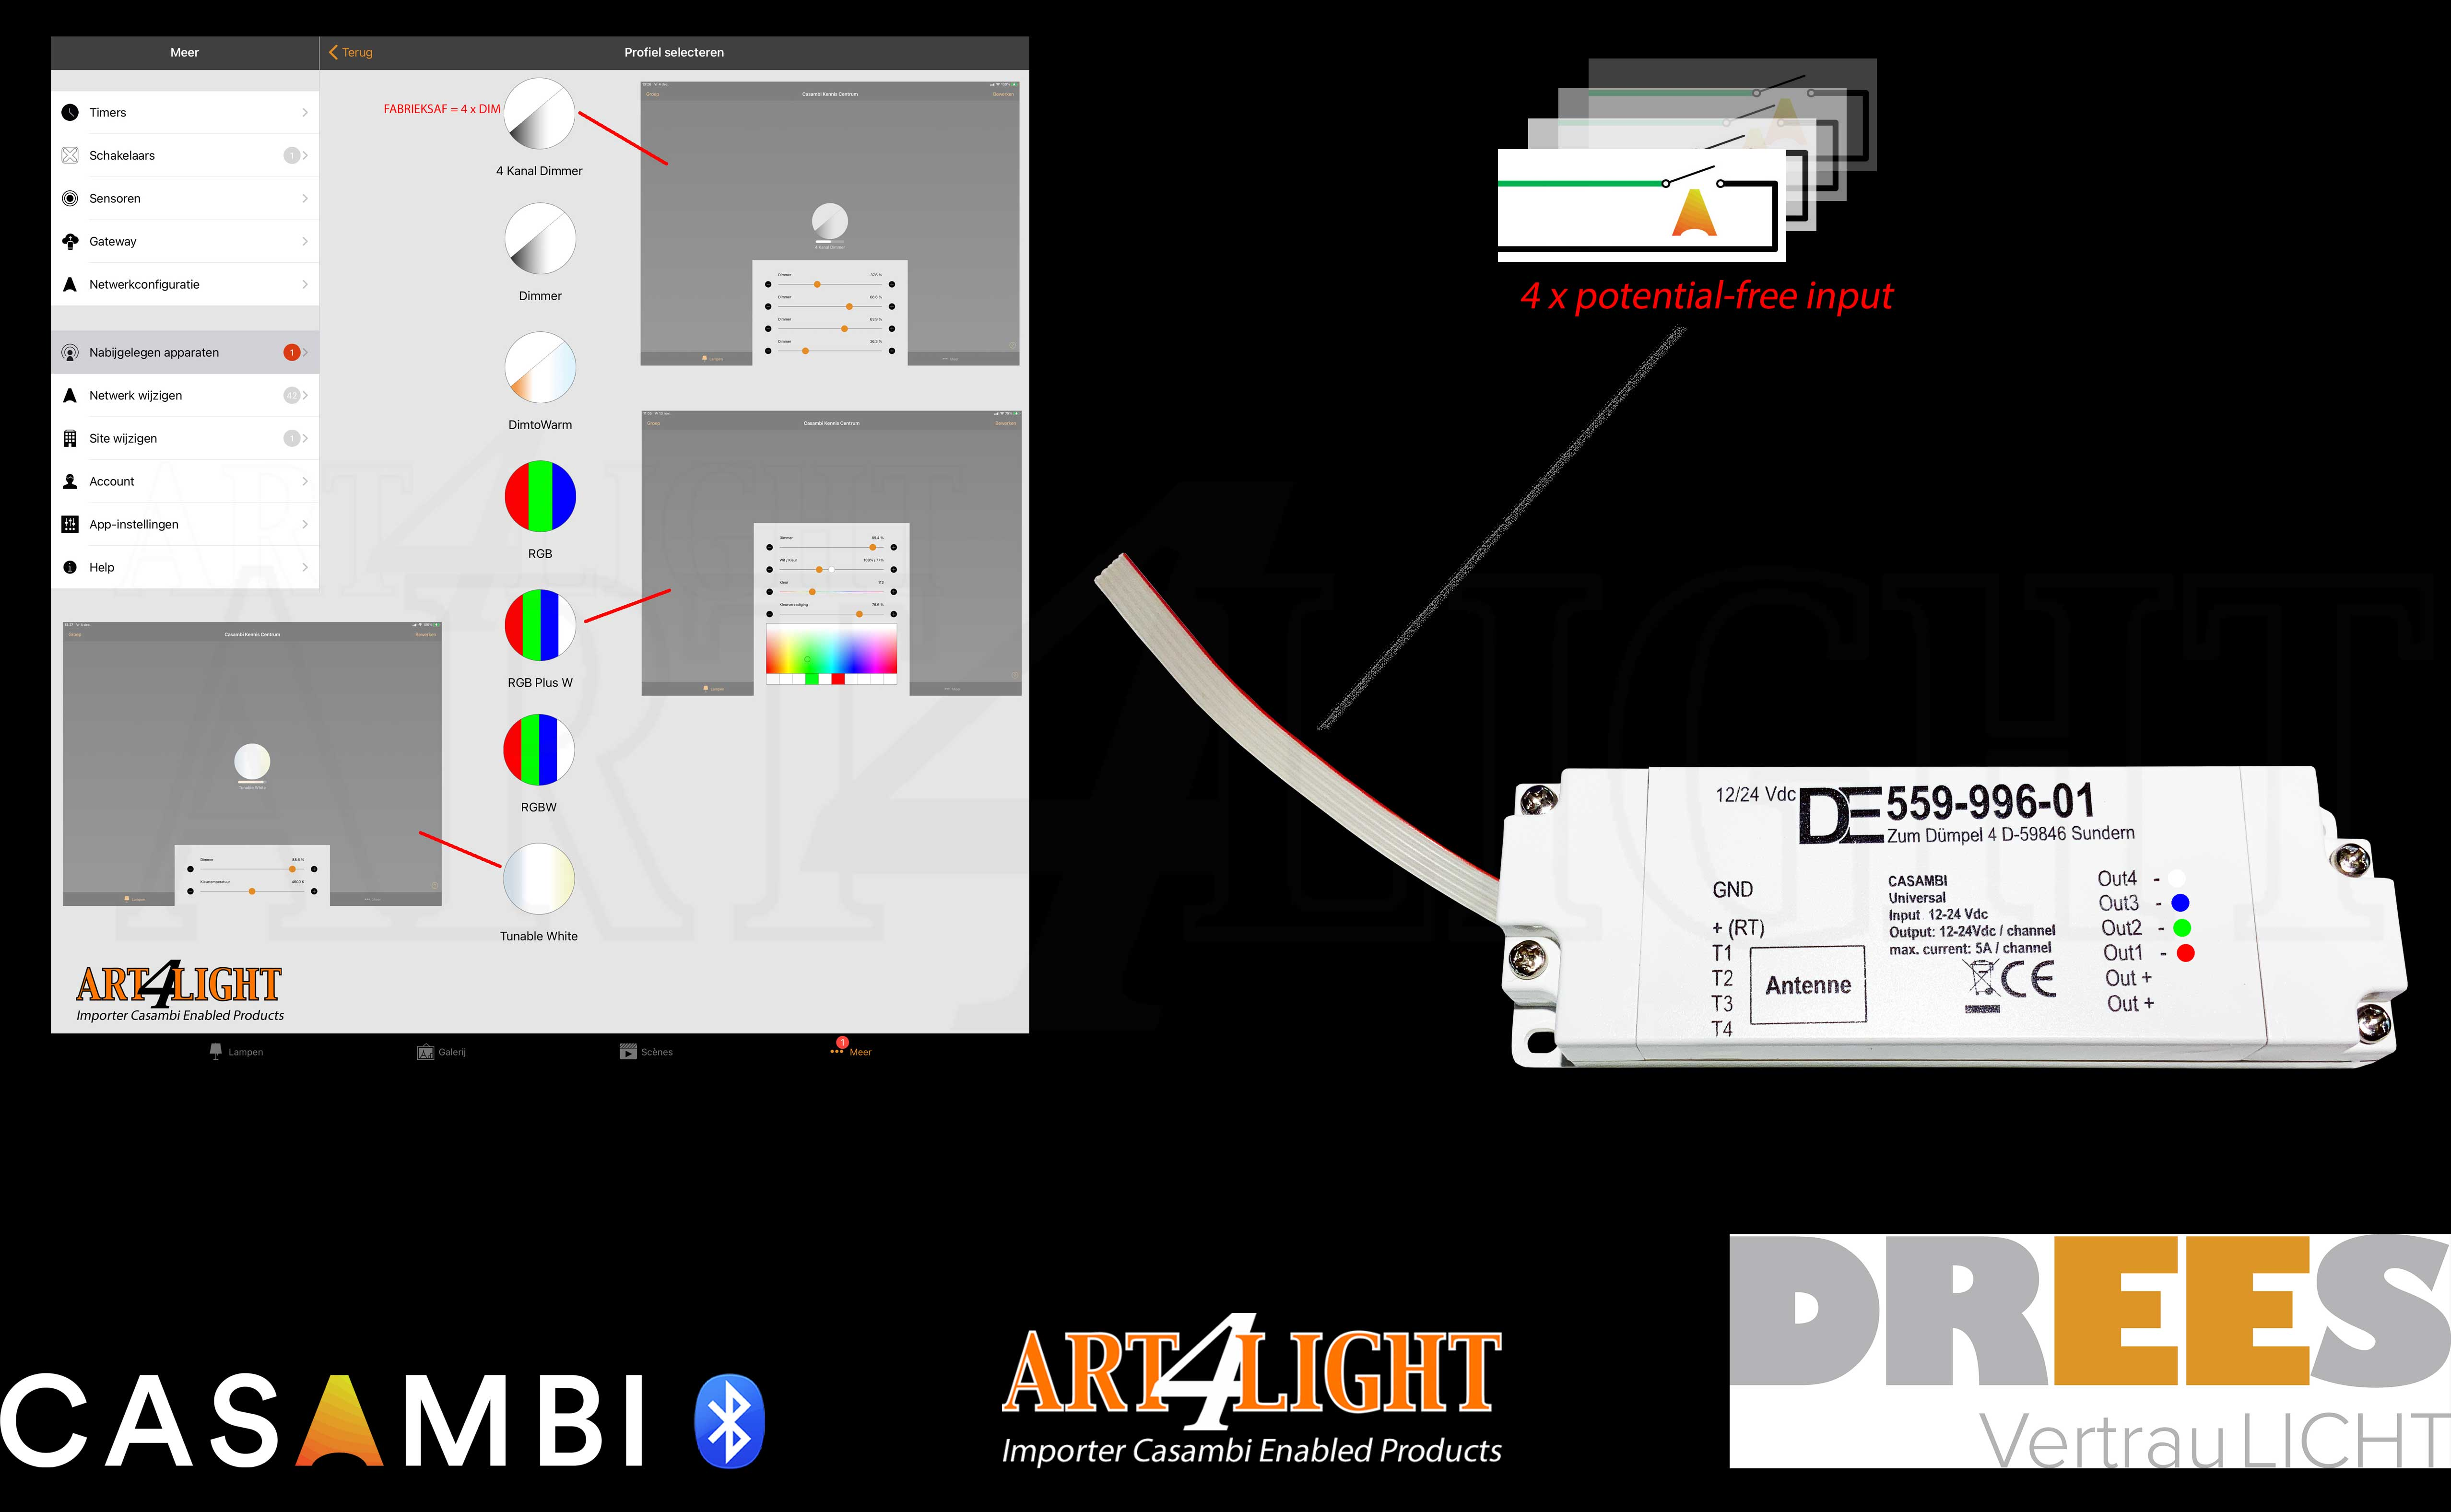 OVERVIEW OF CONFIGURATION  DREES RGBW LEDSTRIP DIMMER CASAMBI